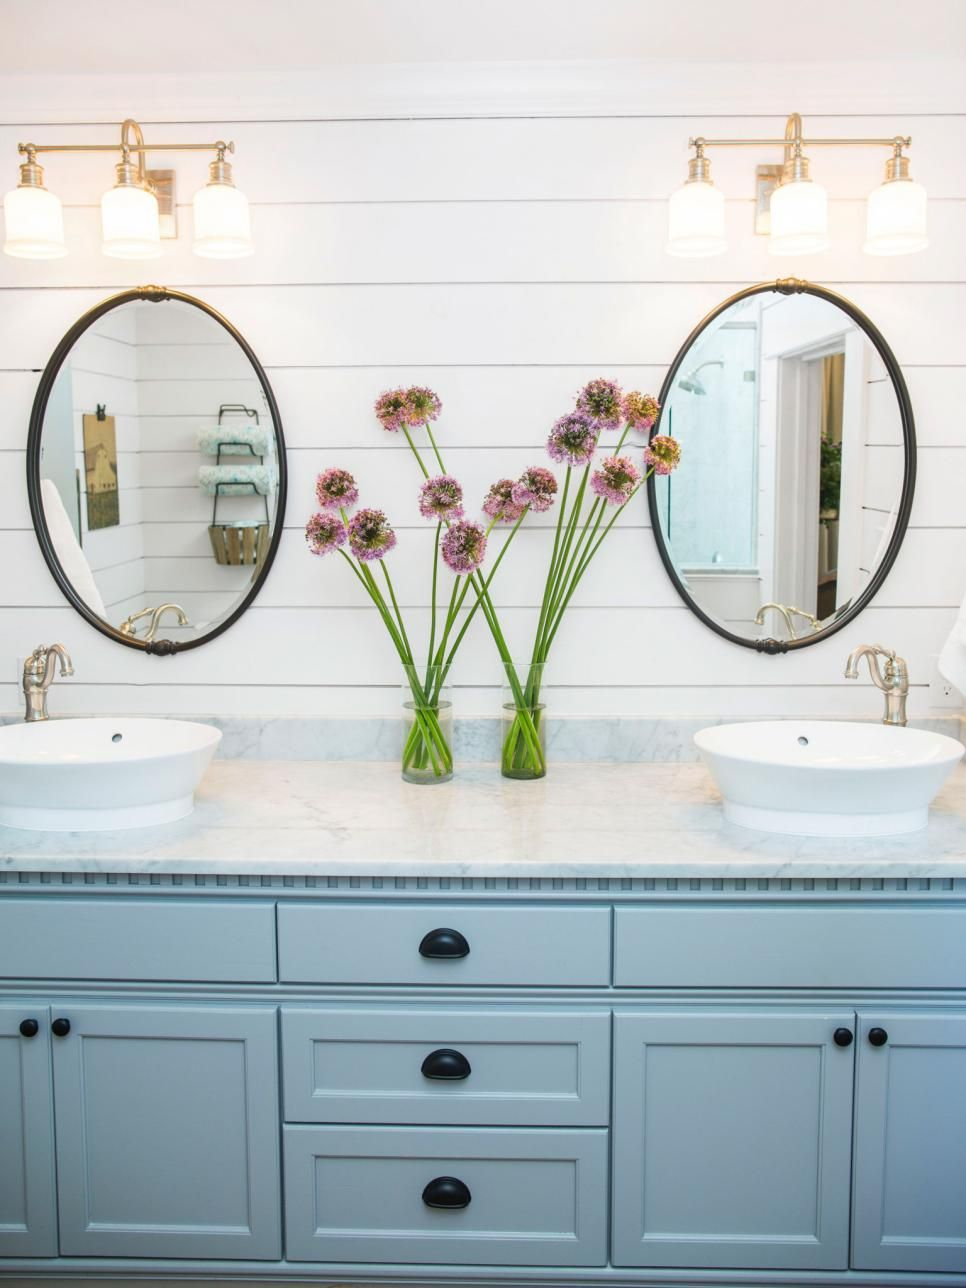 Decorating like joanna gaines - 17 Ways To Decorate Like Chip And Joanna Gaines